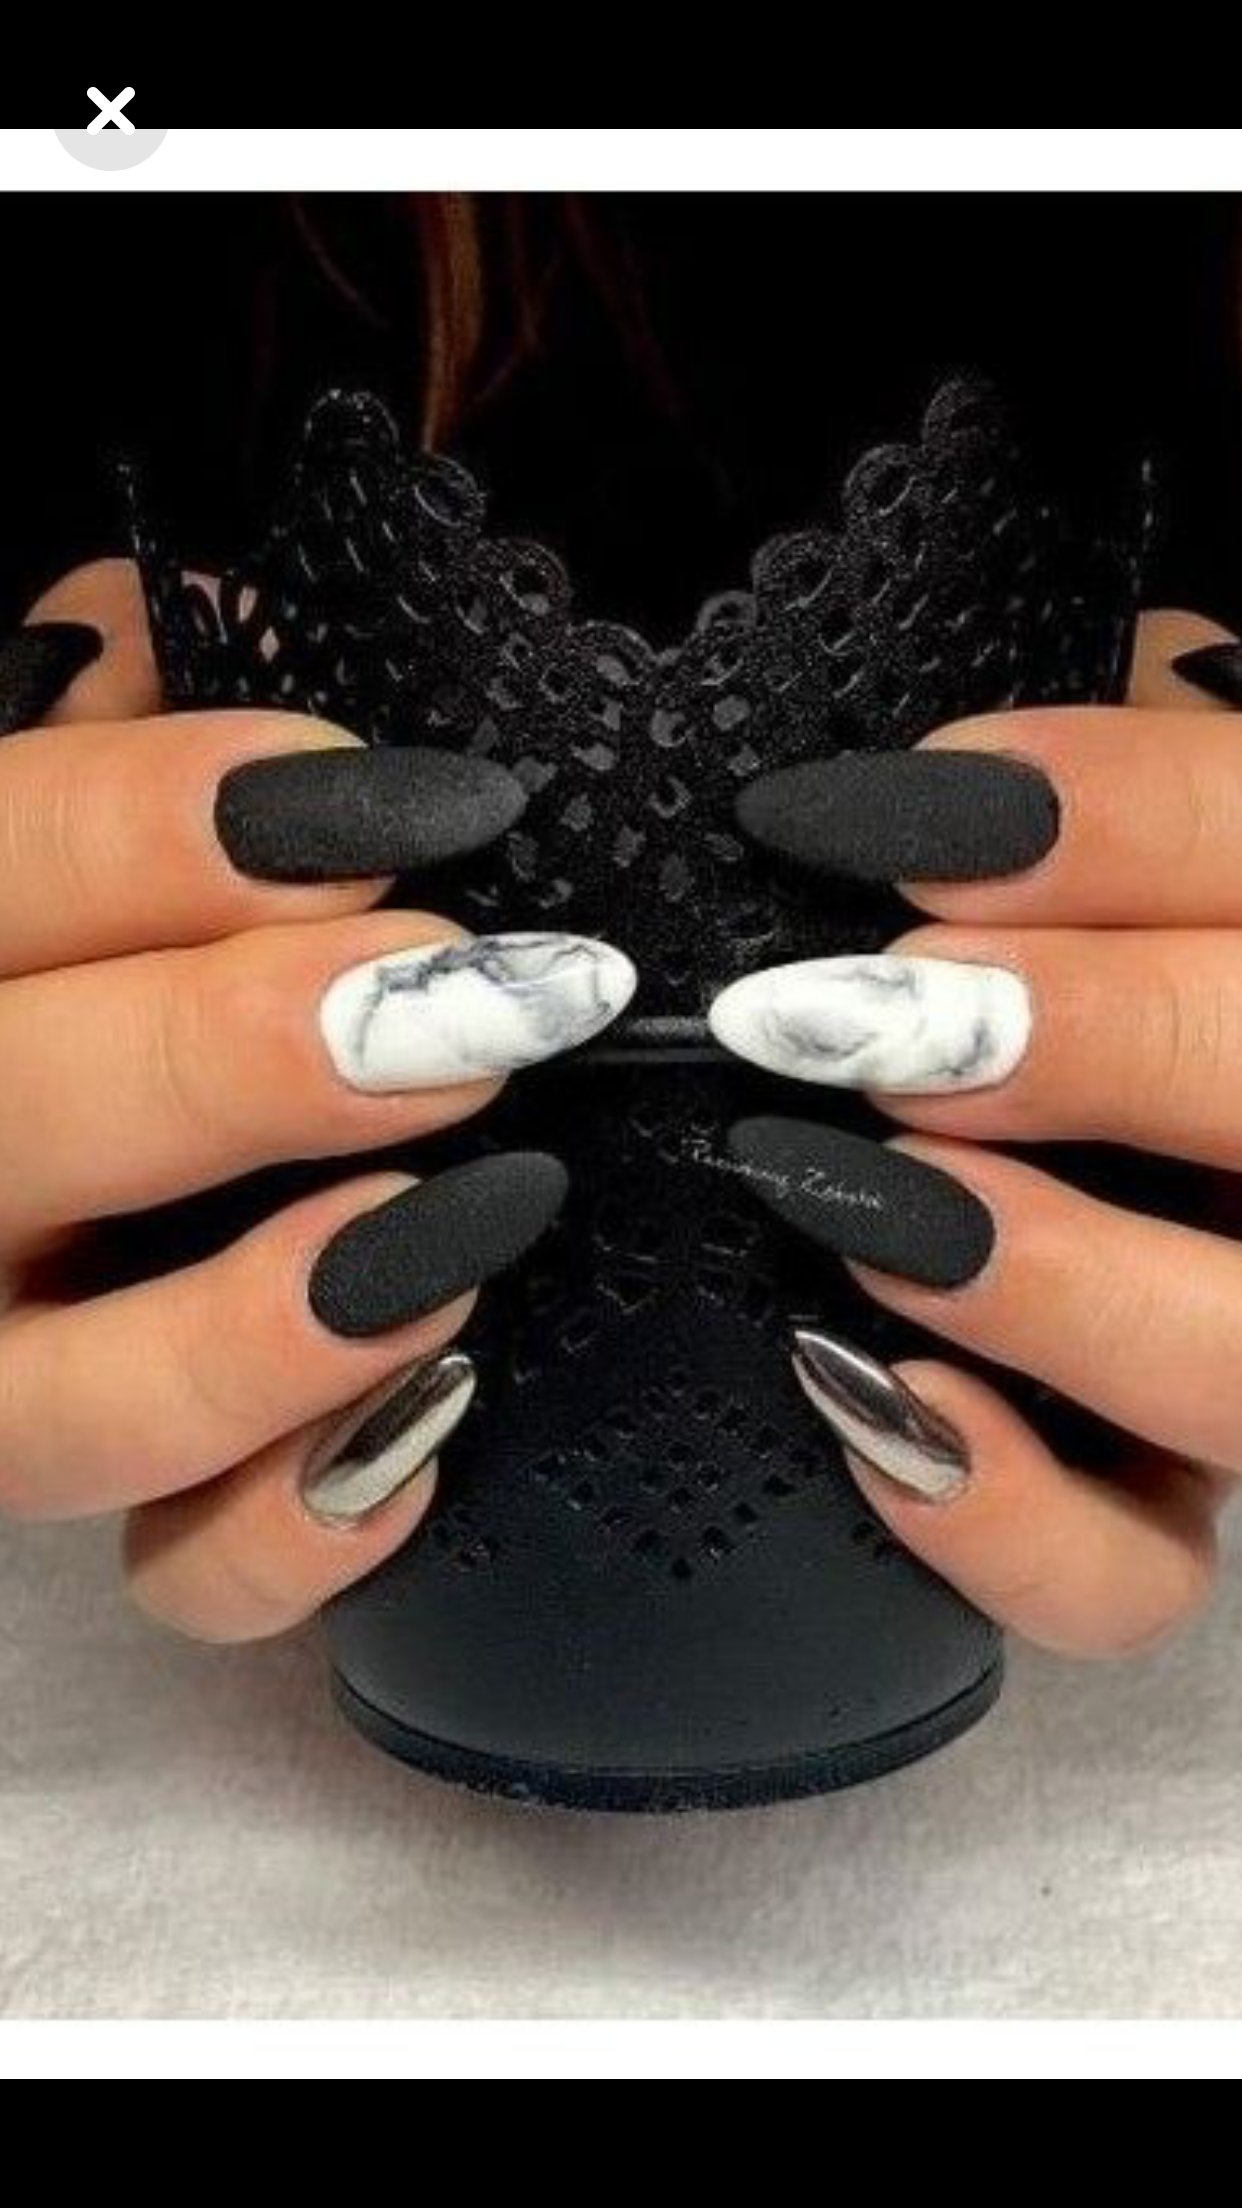 Pin by Ashley on Claws | Pinterest | Pedicure nail designs, Nail ...